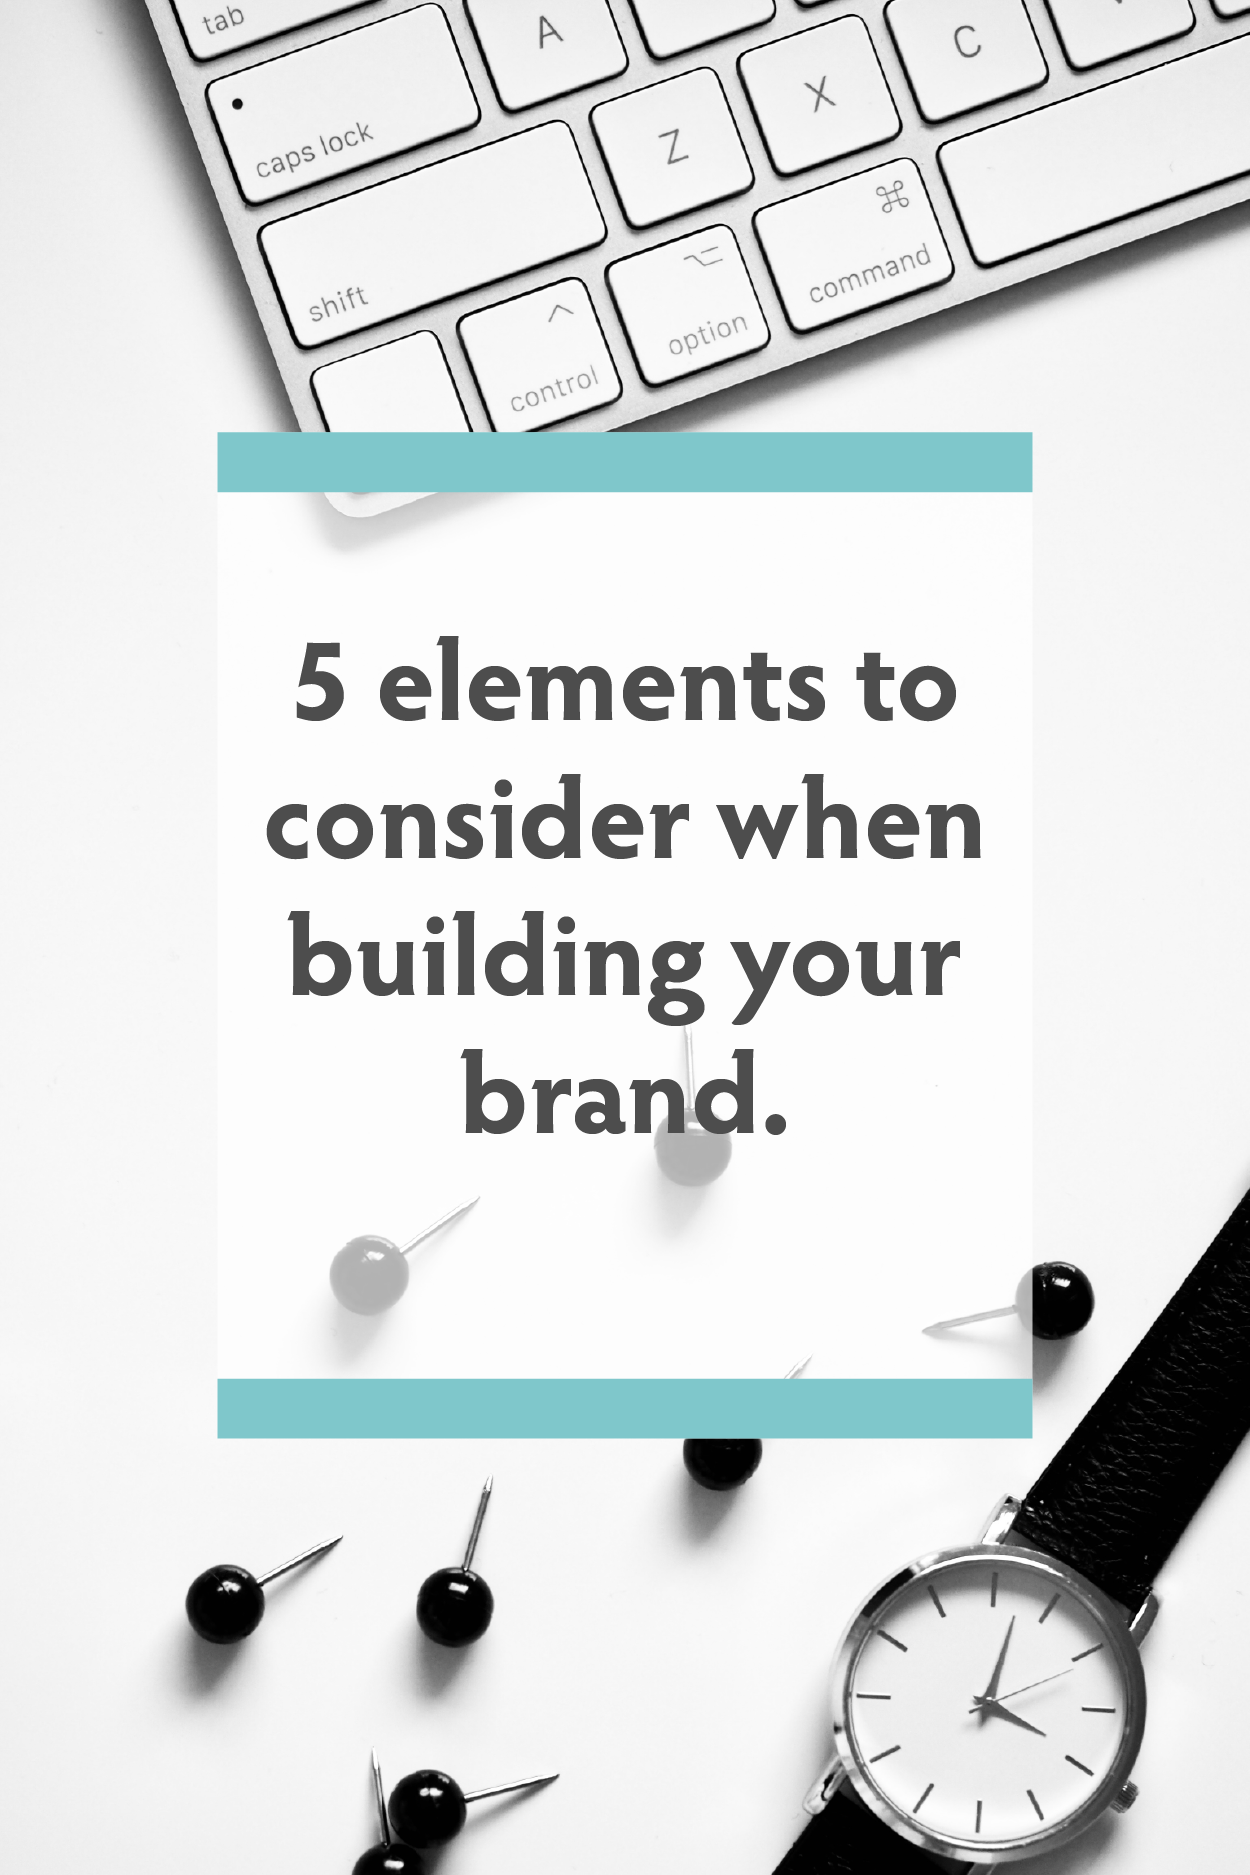 5 elements to consider when building your brand.